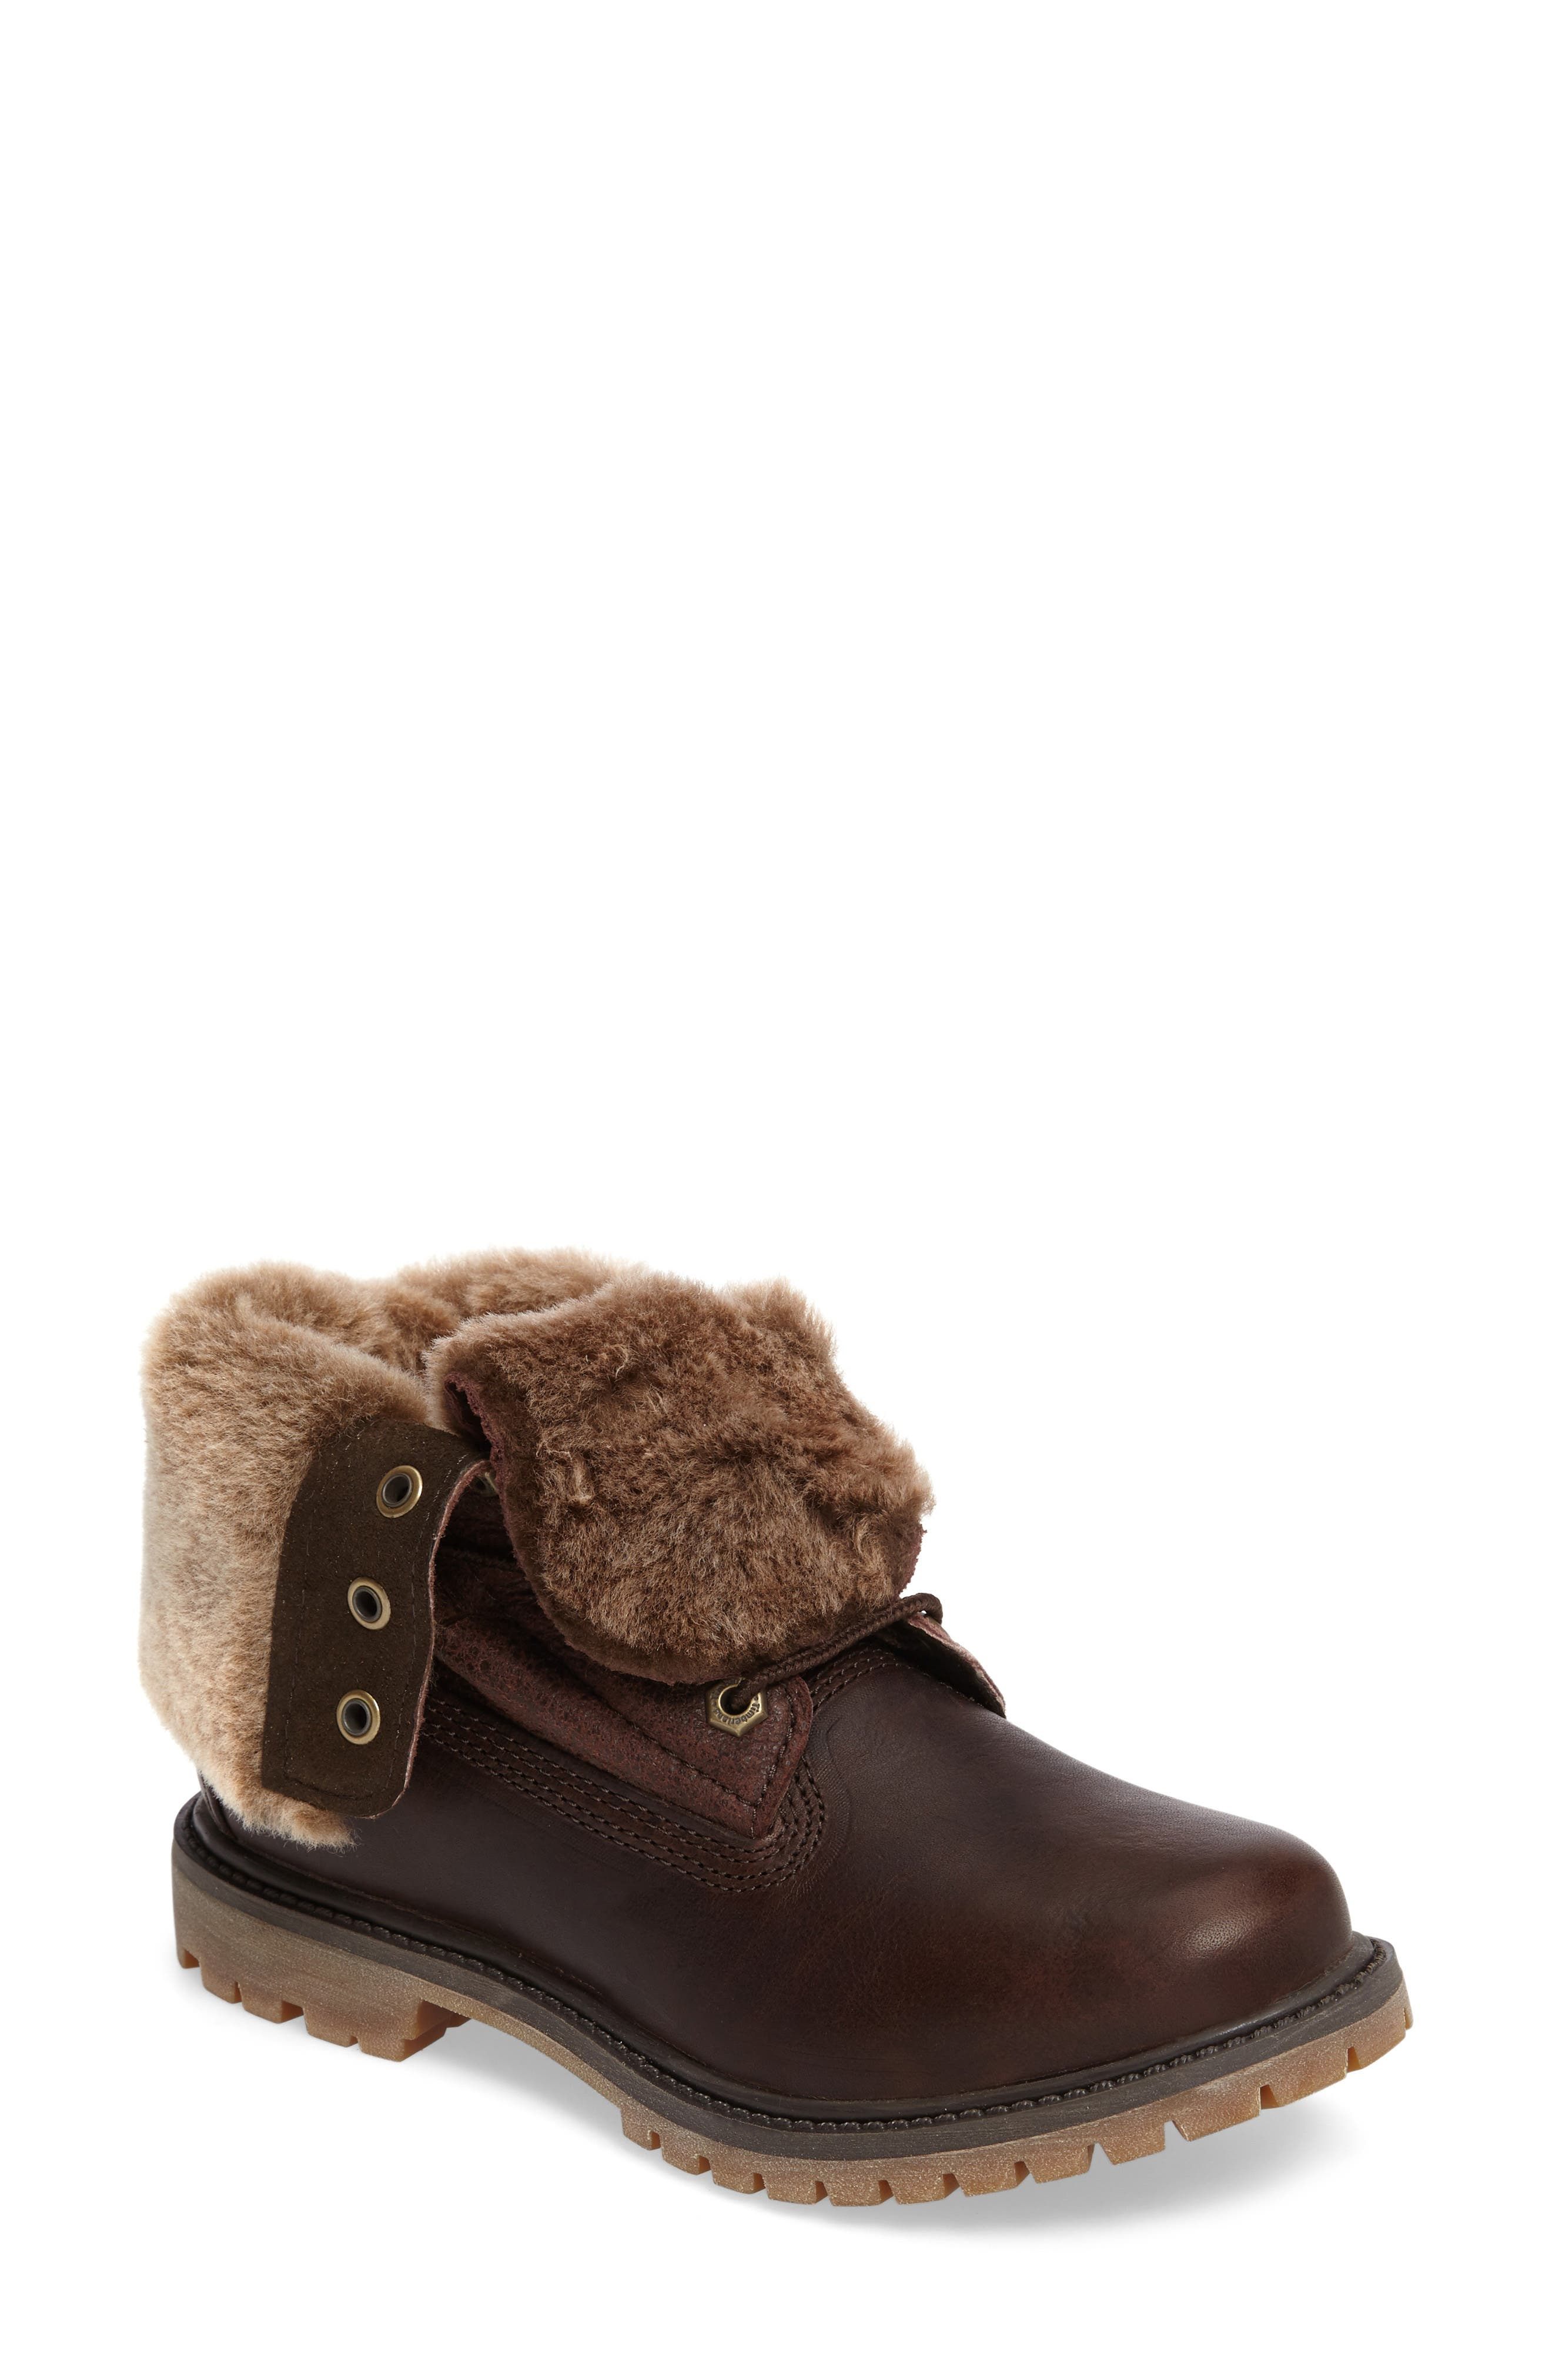 Alternate Image 1 Selected - Timberland Authentic Water Resistant Genuine Shearling Boot (Women)